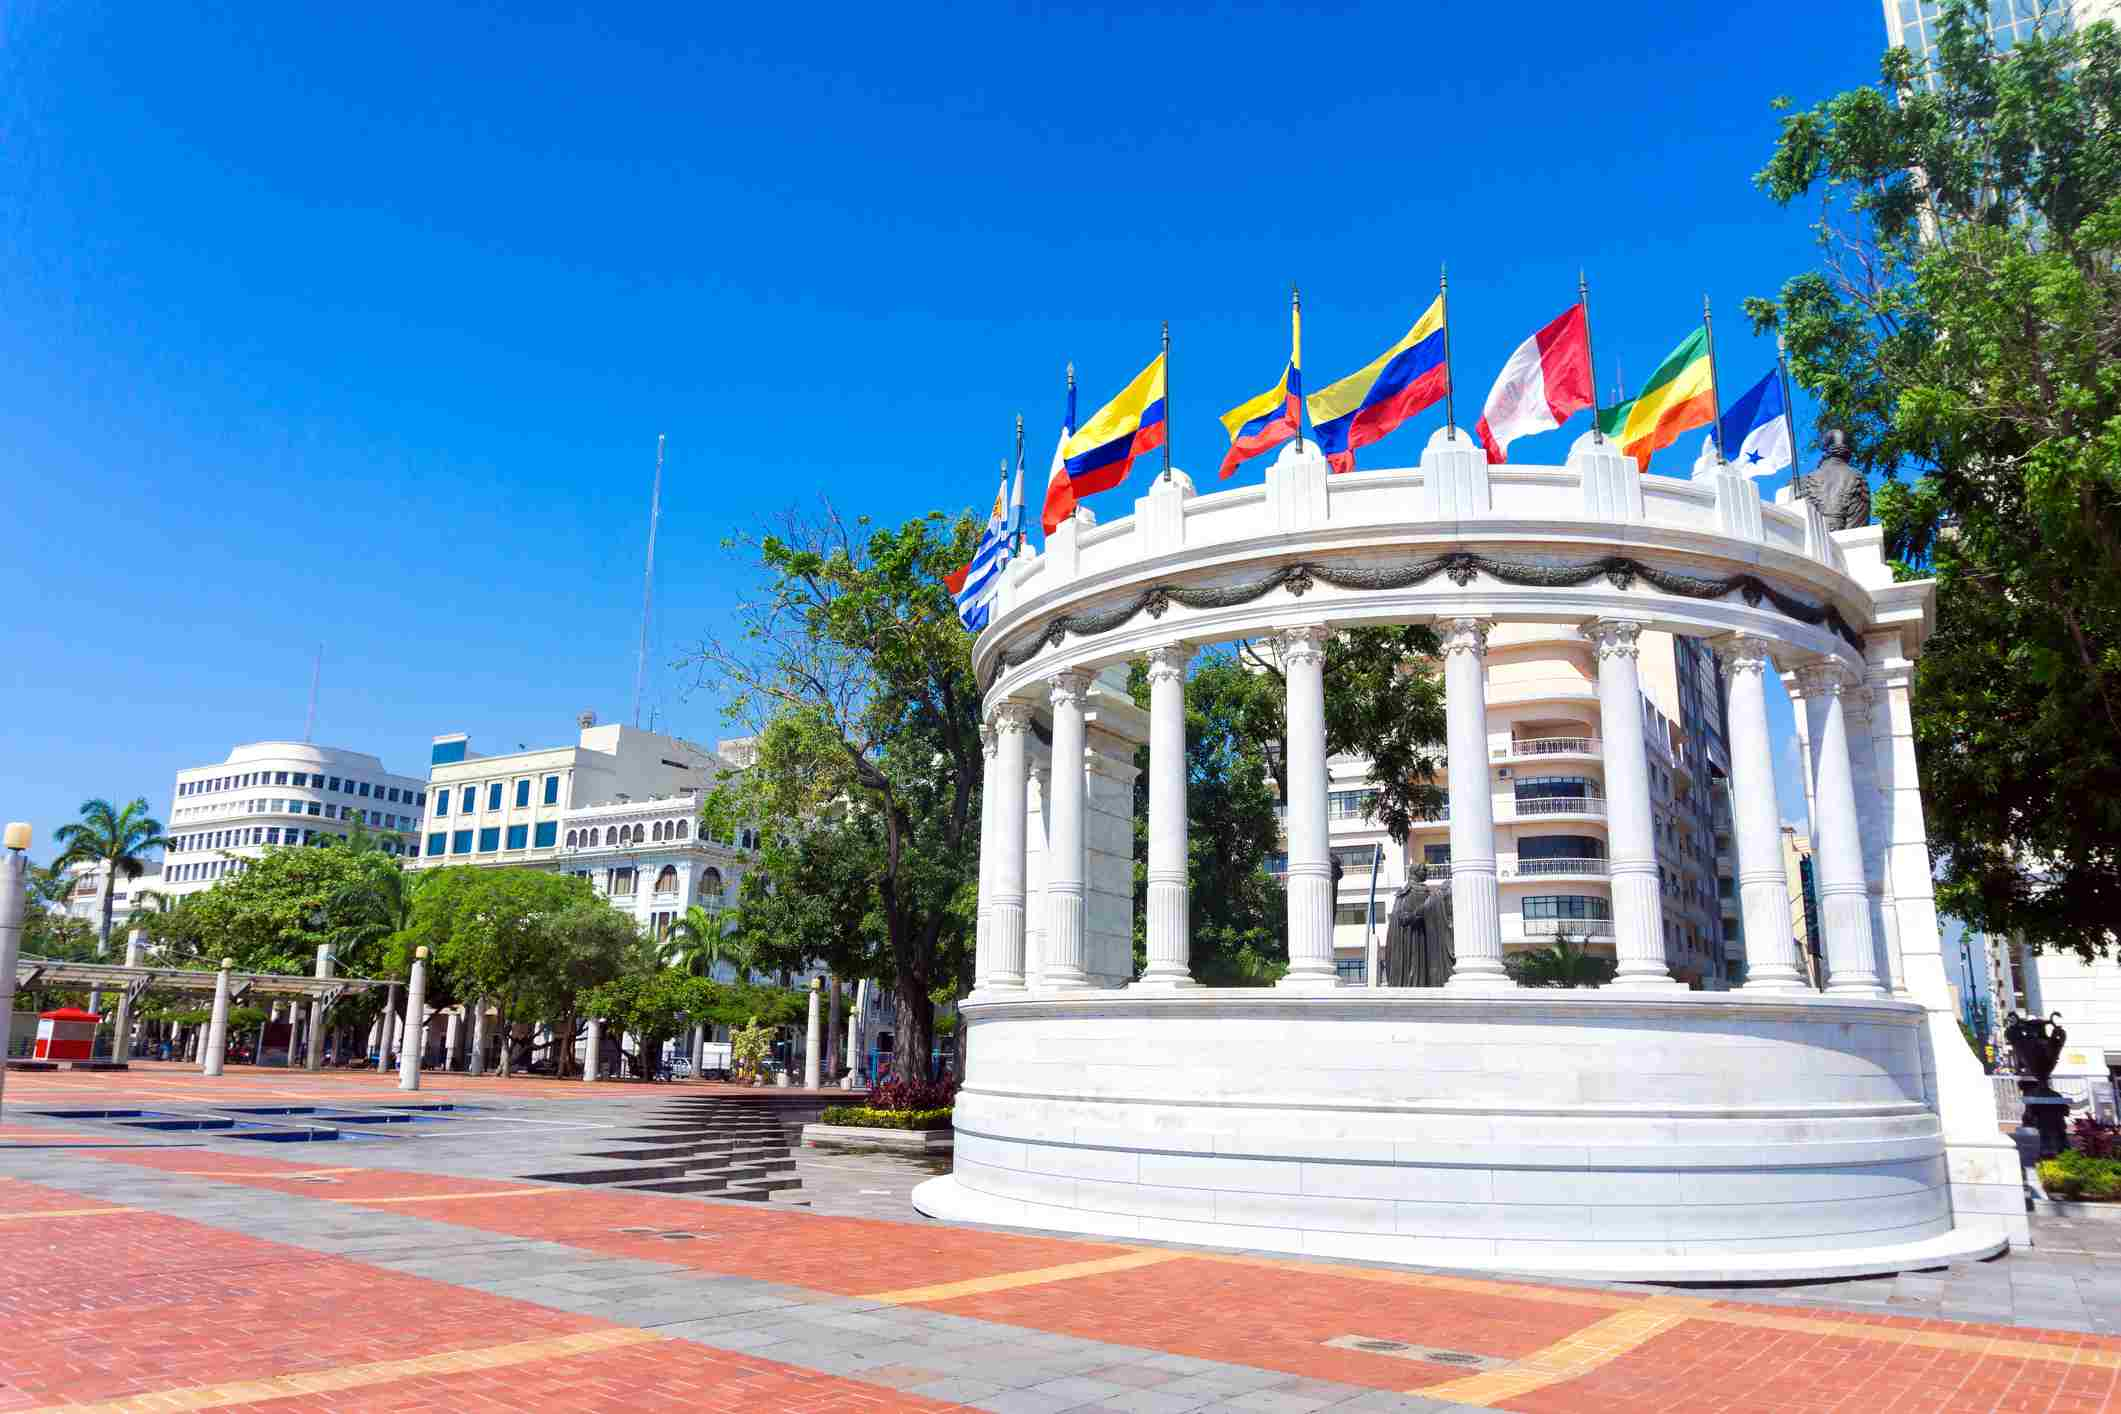 National Flags On Hemicycle De La Rotonda Malecon 2000 During Sunny Day